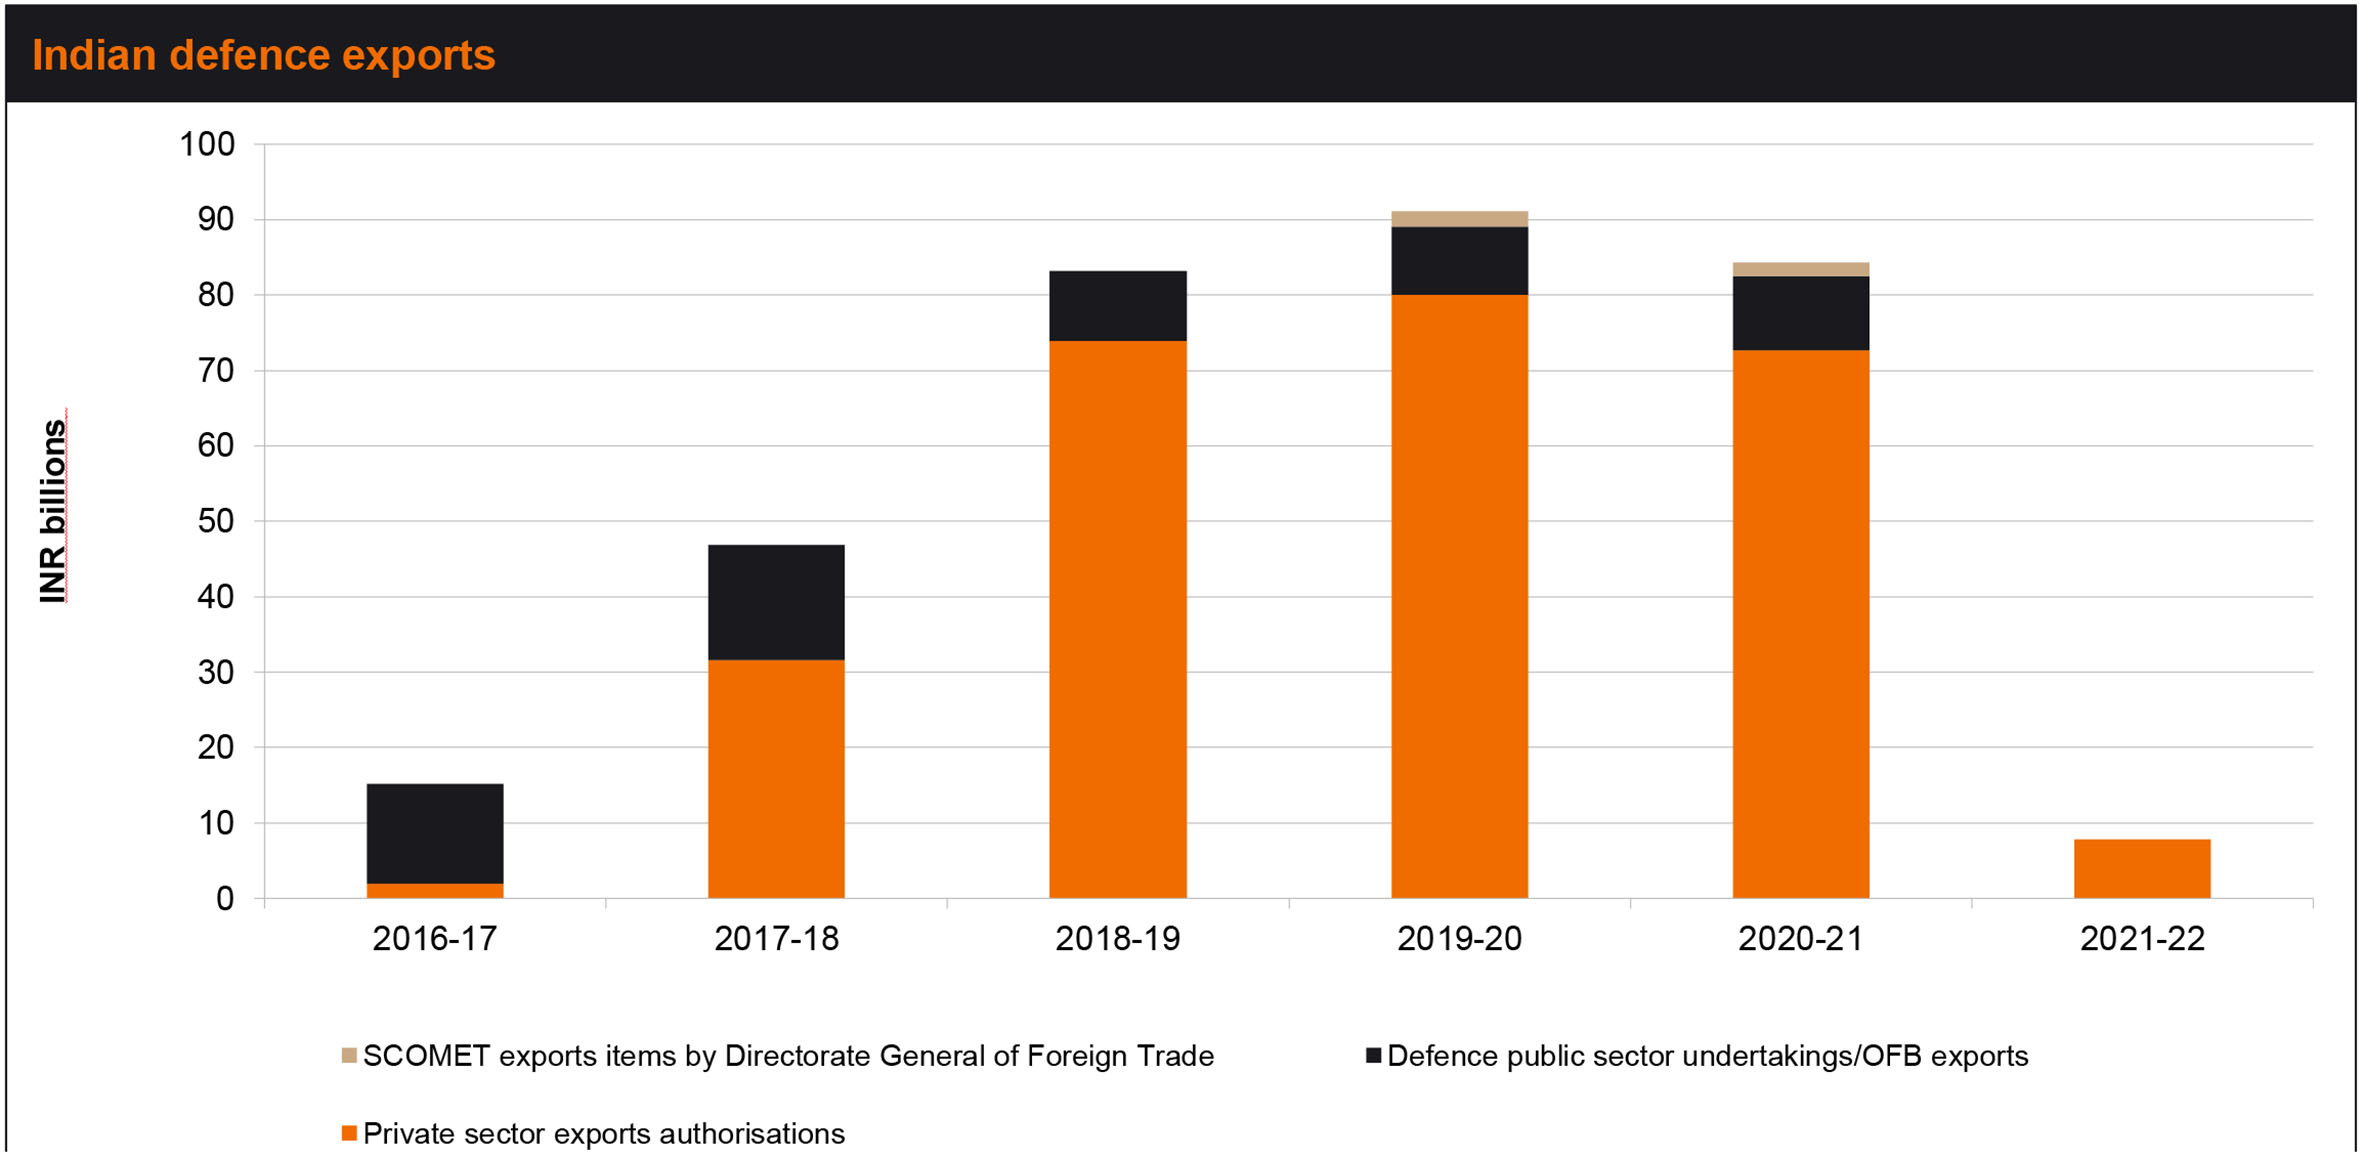 Indian defence exports declined by 7.5% in FY 2020-21 to INR83.34 billion compared to FY 2019–20 (Indian MoD)